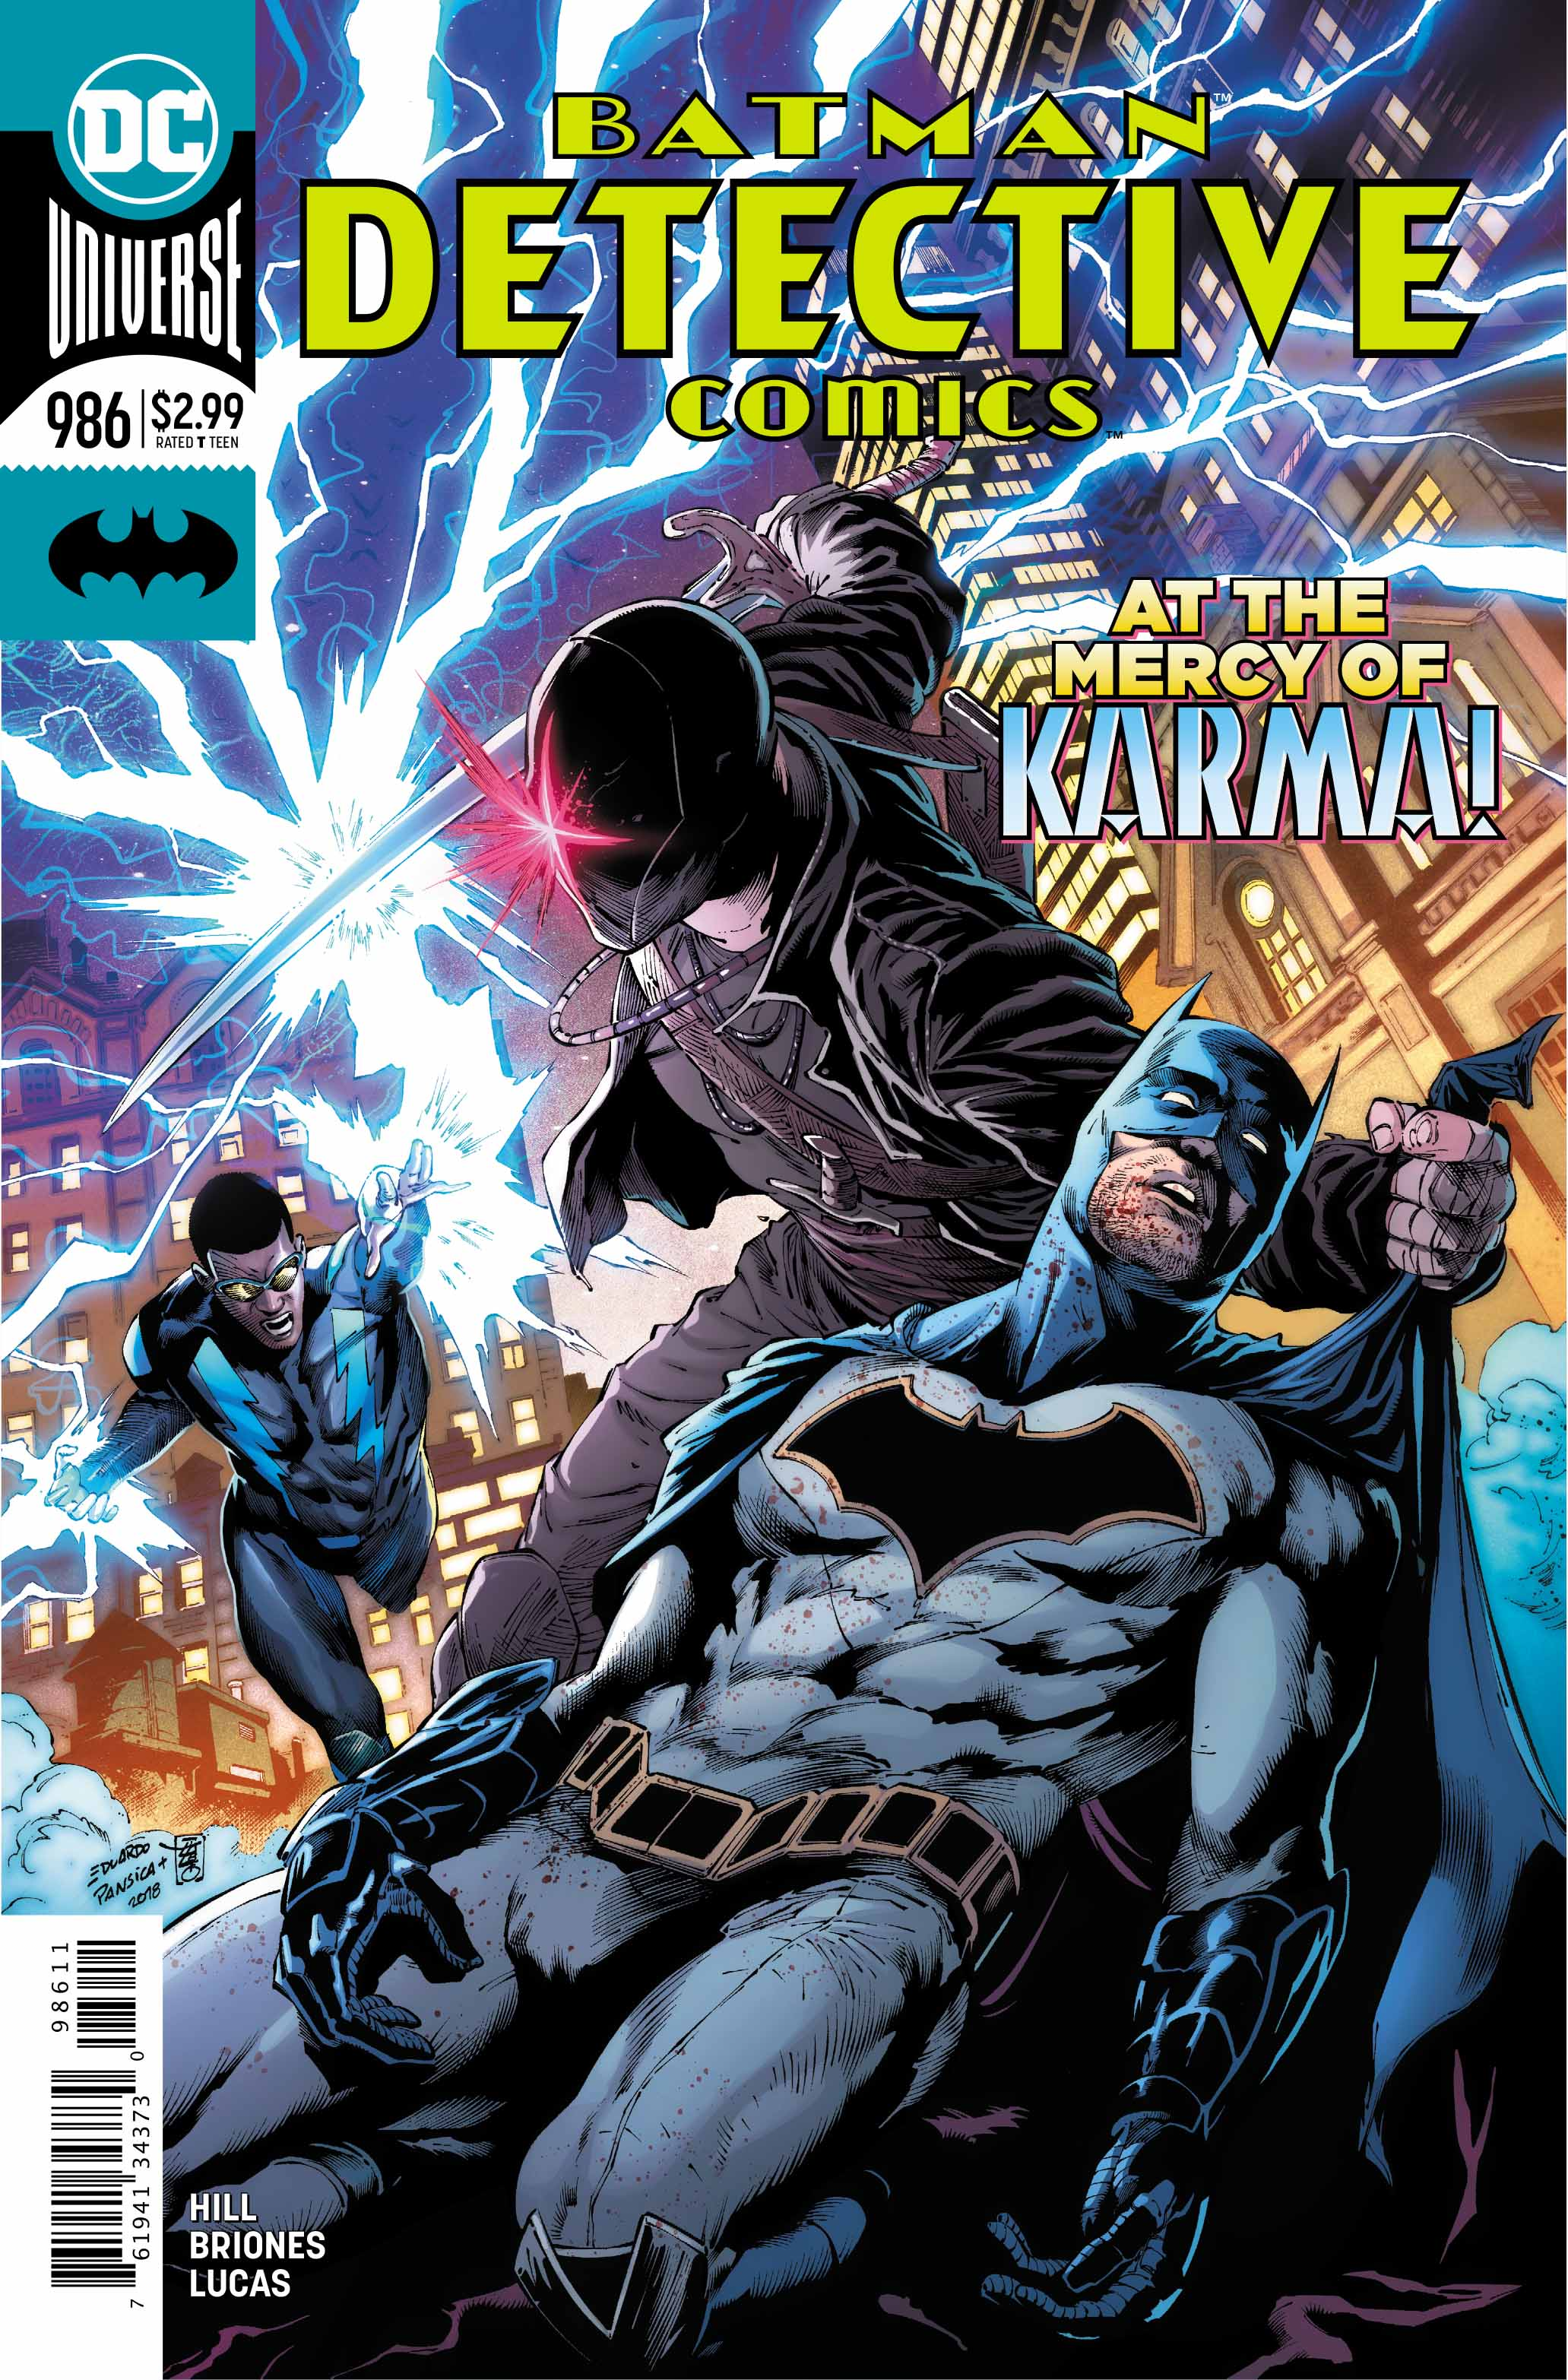 Detective Comics #986 Review